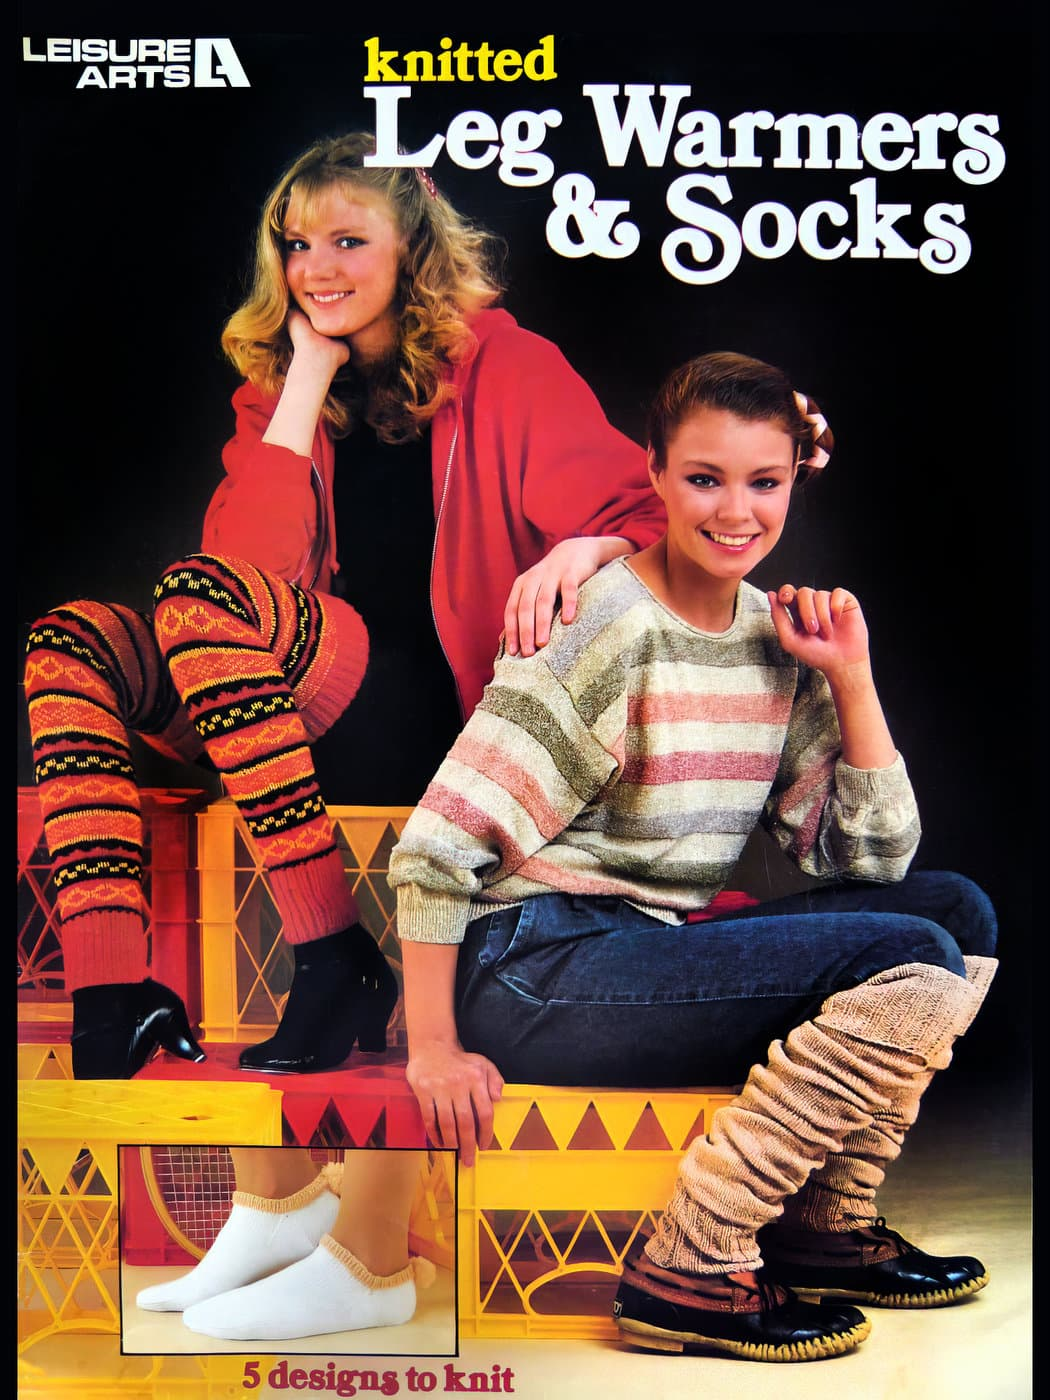 Vintage leg warmers - worn with jeans - in the eighties